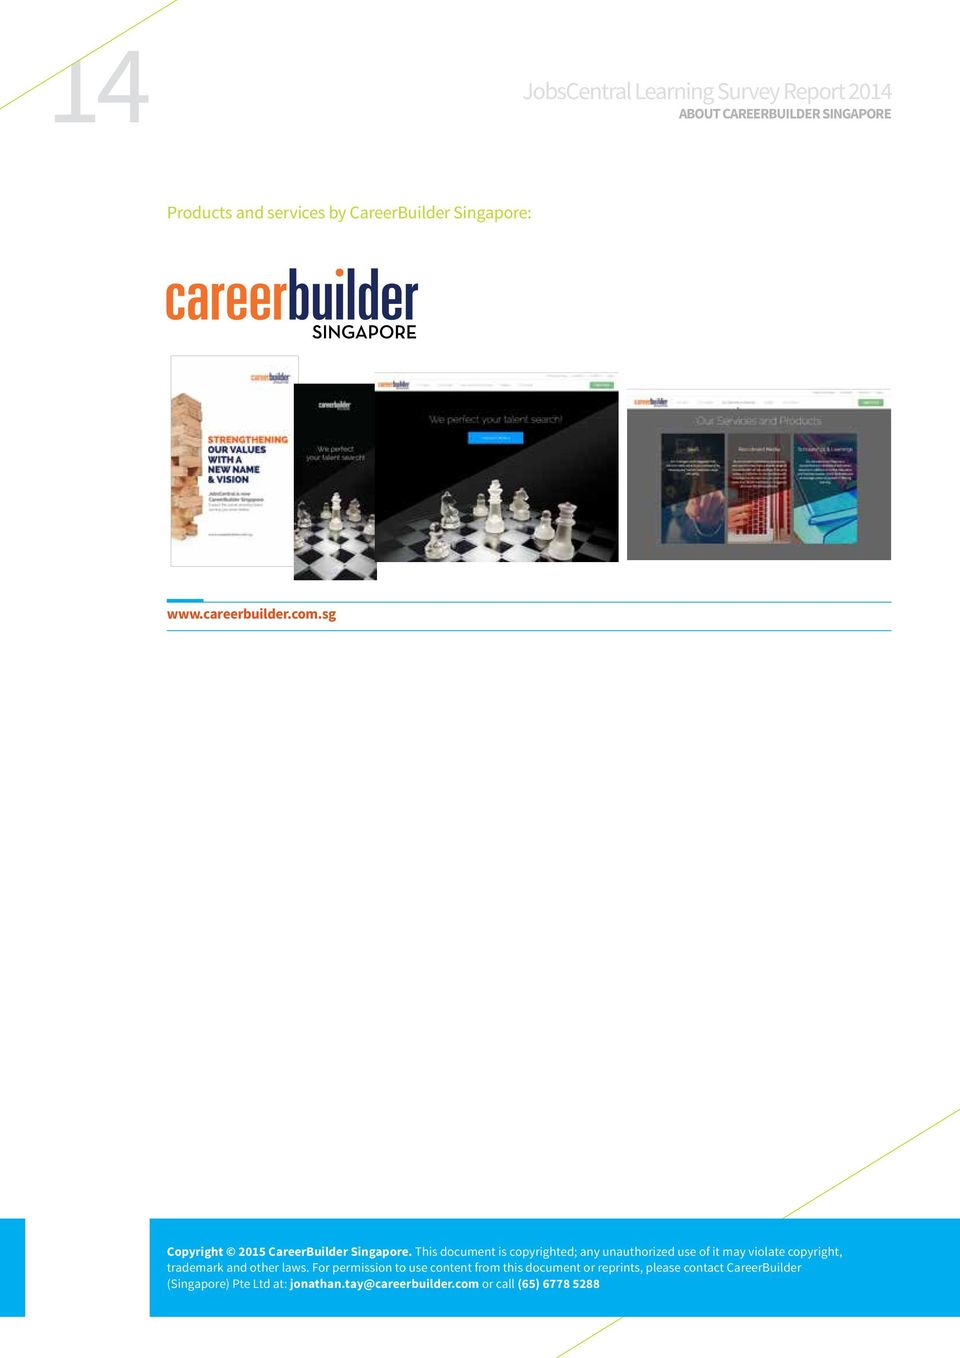 services by CareerBuilder